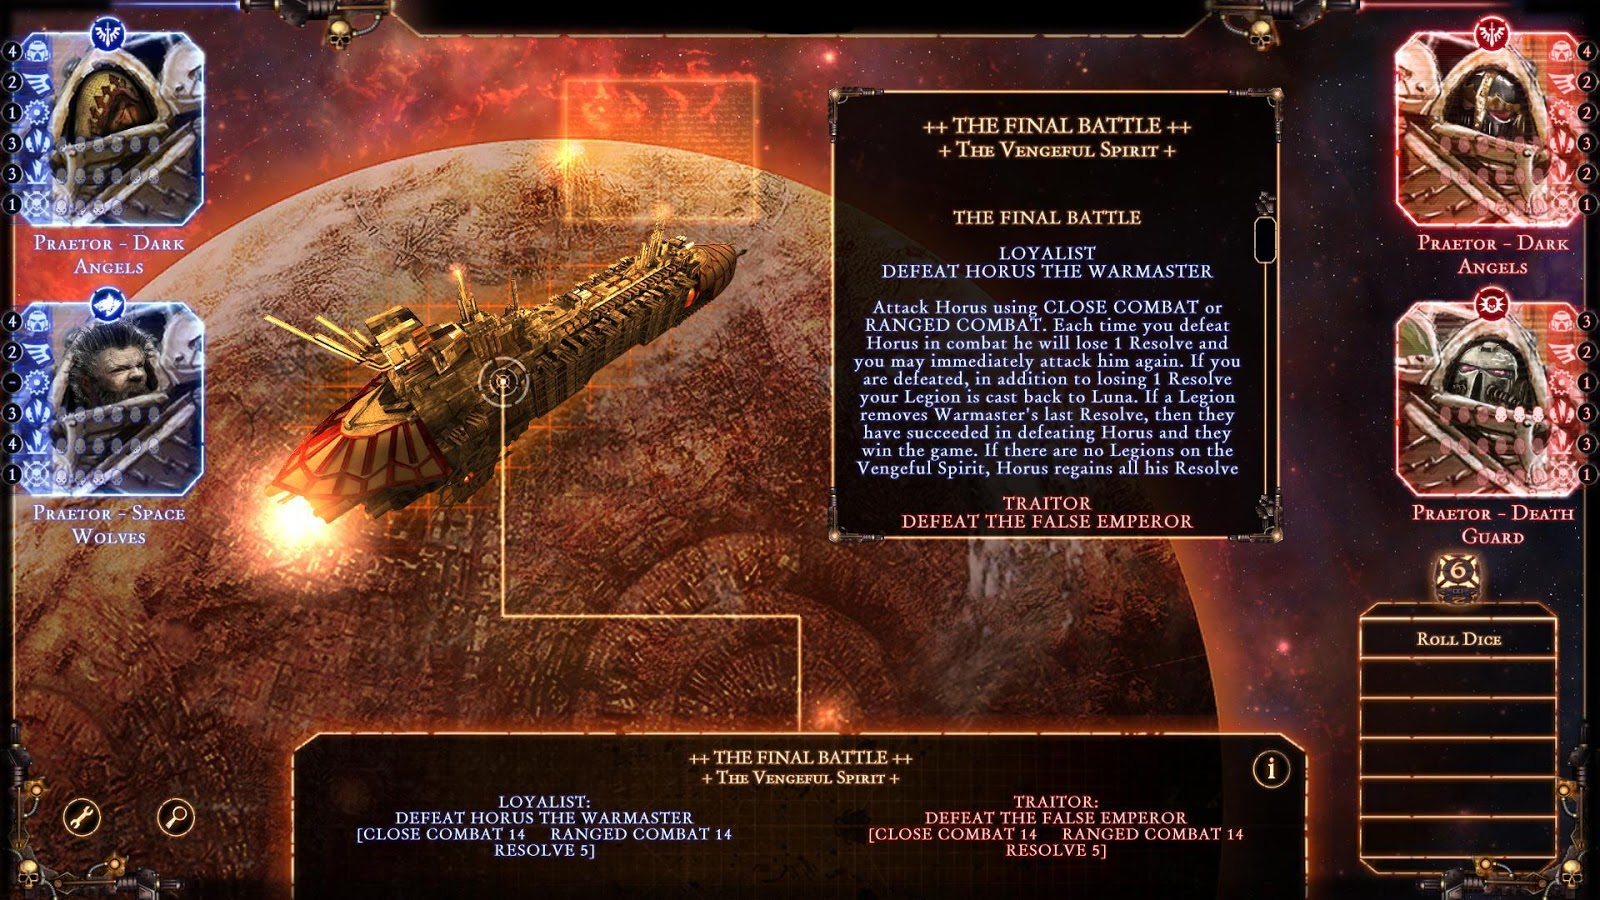 Talisman: The Horus Heresy Screenshot 11